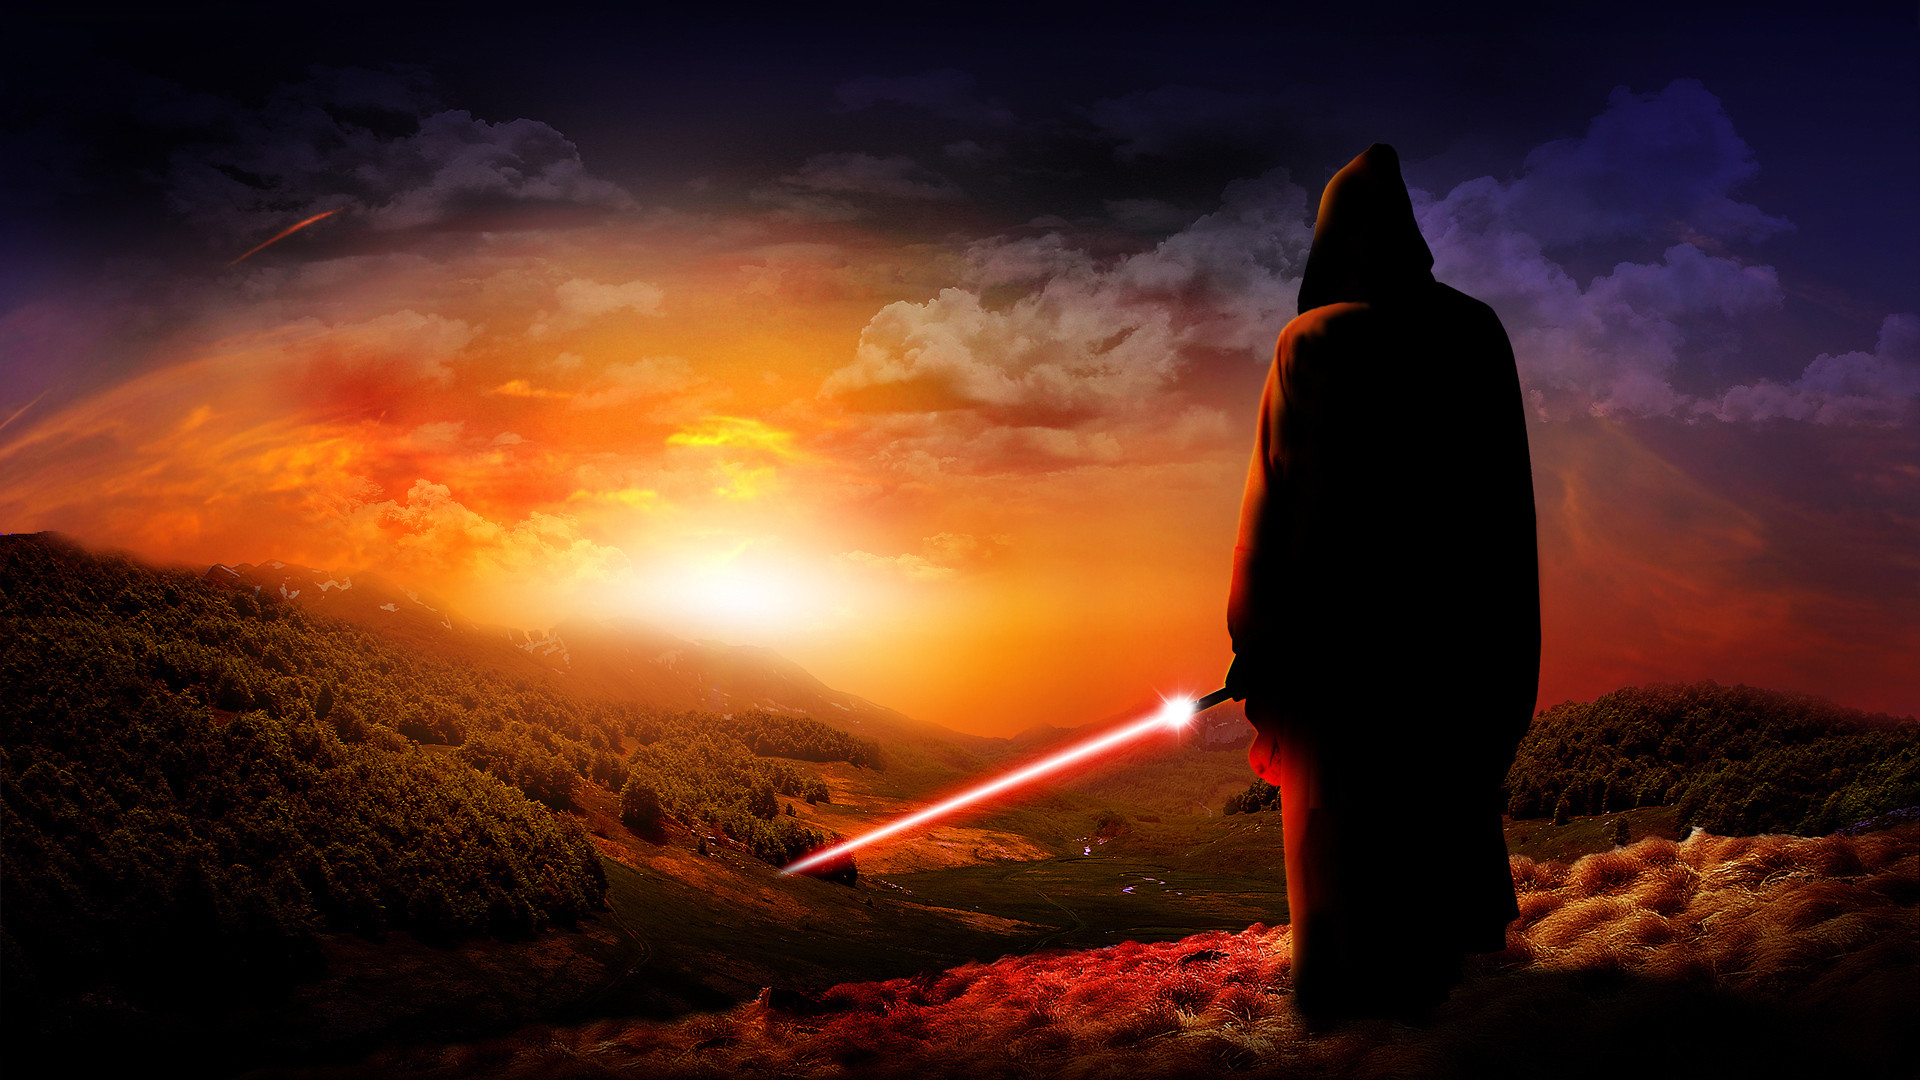 Black Background Dark Background Jedi Lightsabers Sith Star Wars free  iPhone or Android Full HD wallpaper.